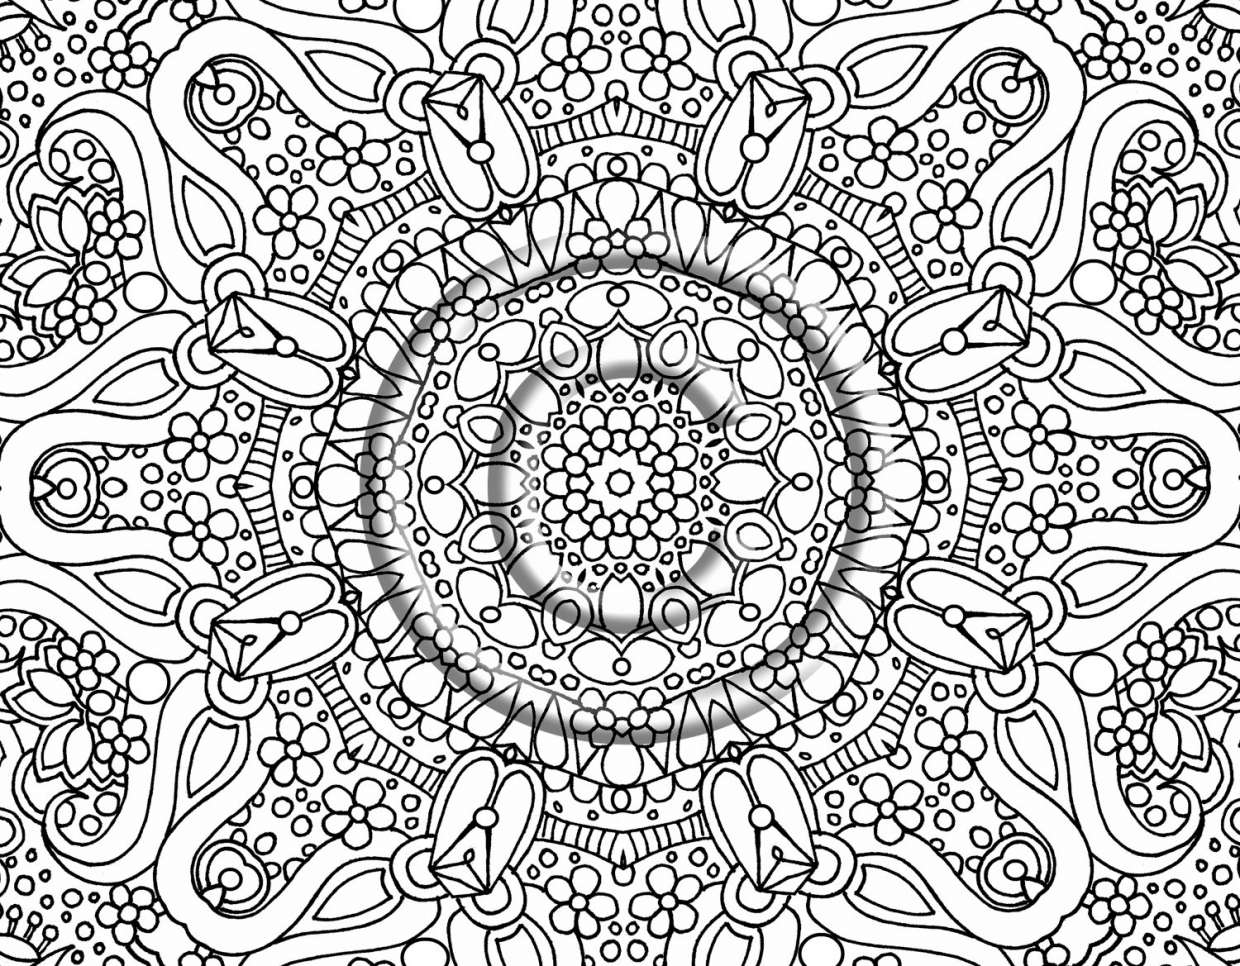 complex design free coloring pages | Get This Free Complex Coloring Pages to Print for Adults ...